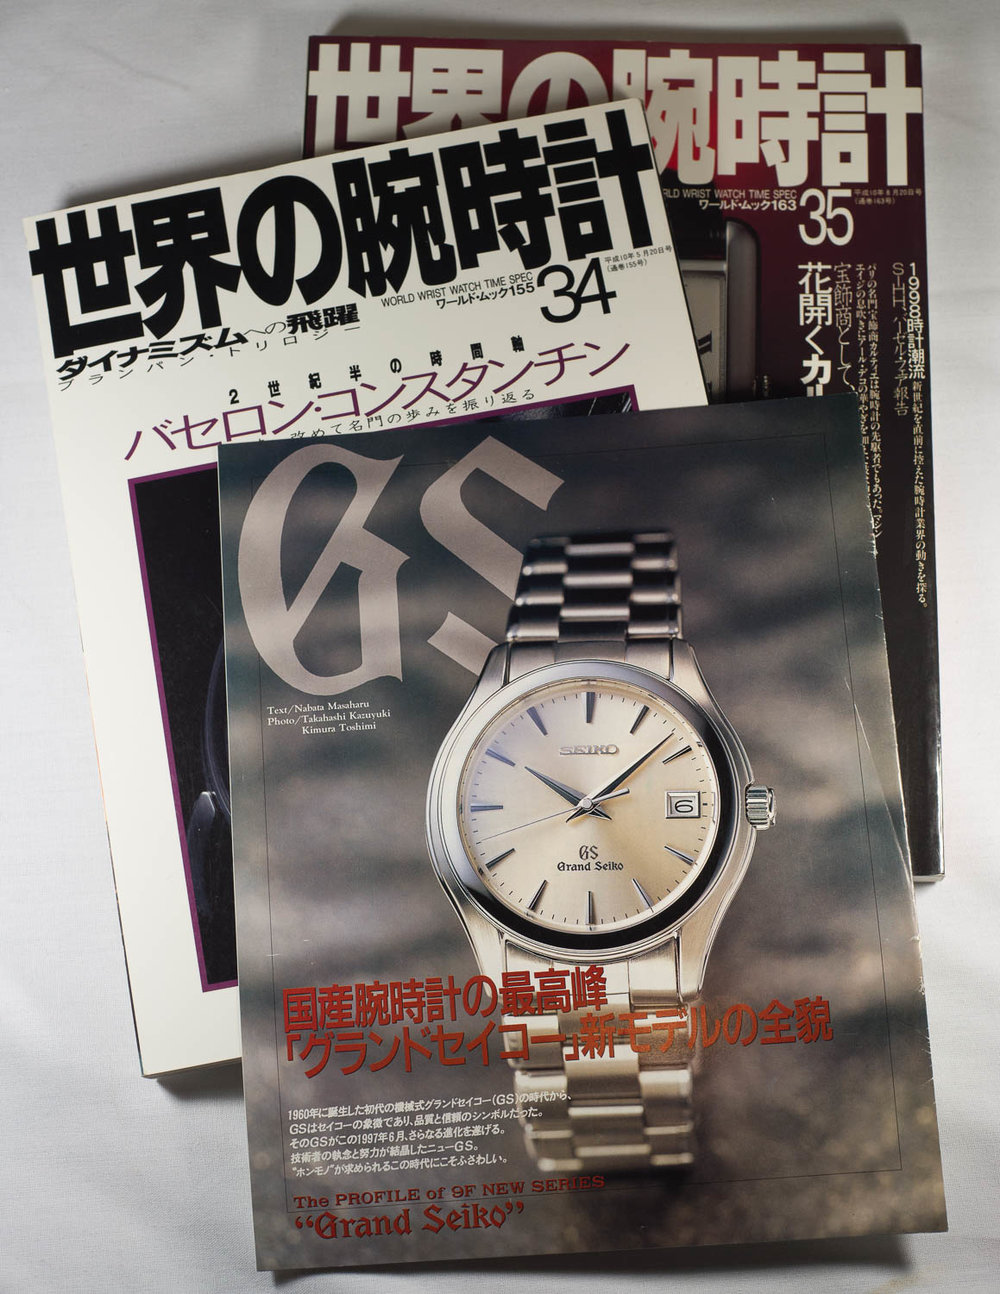 Watch Magazines and GS 9F Brochure